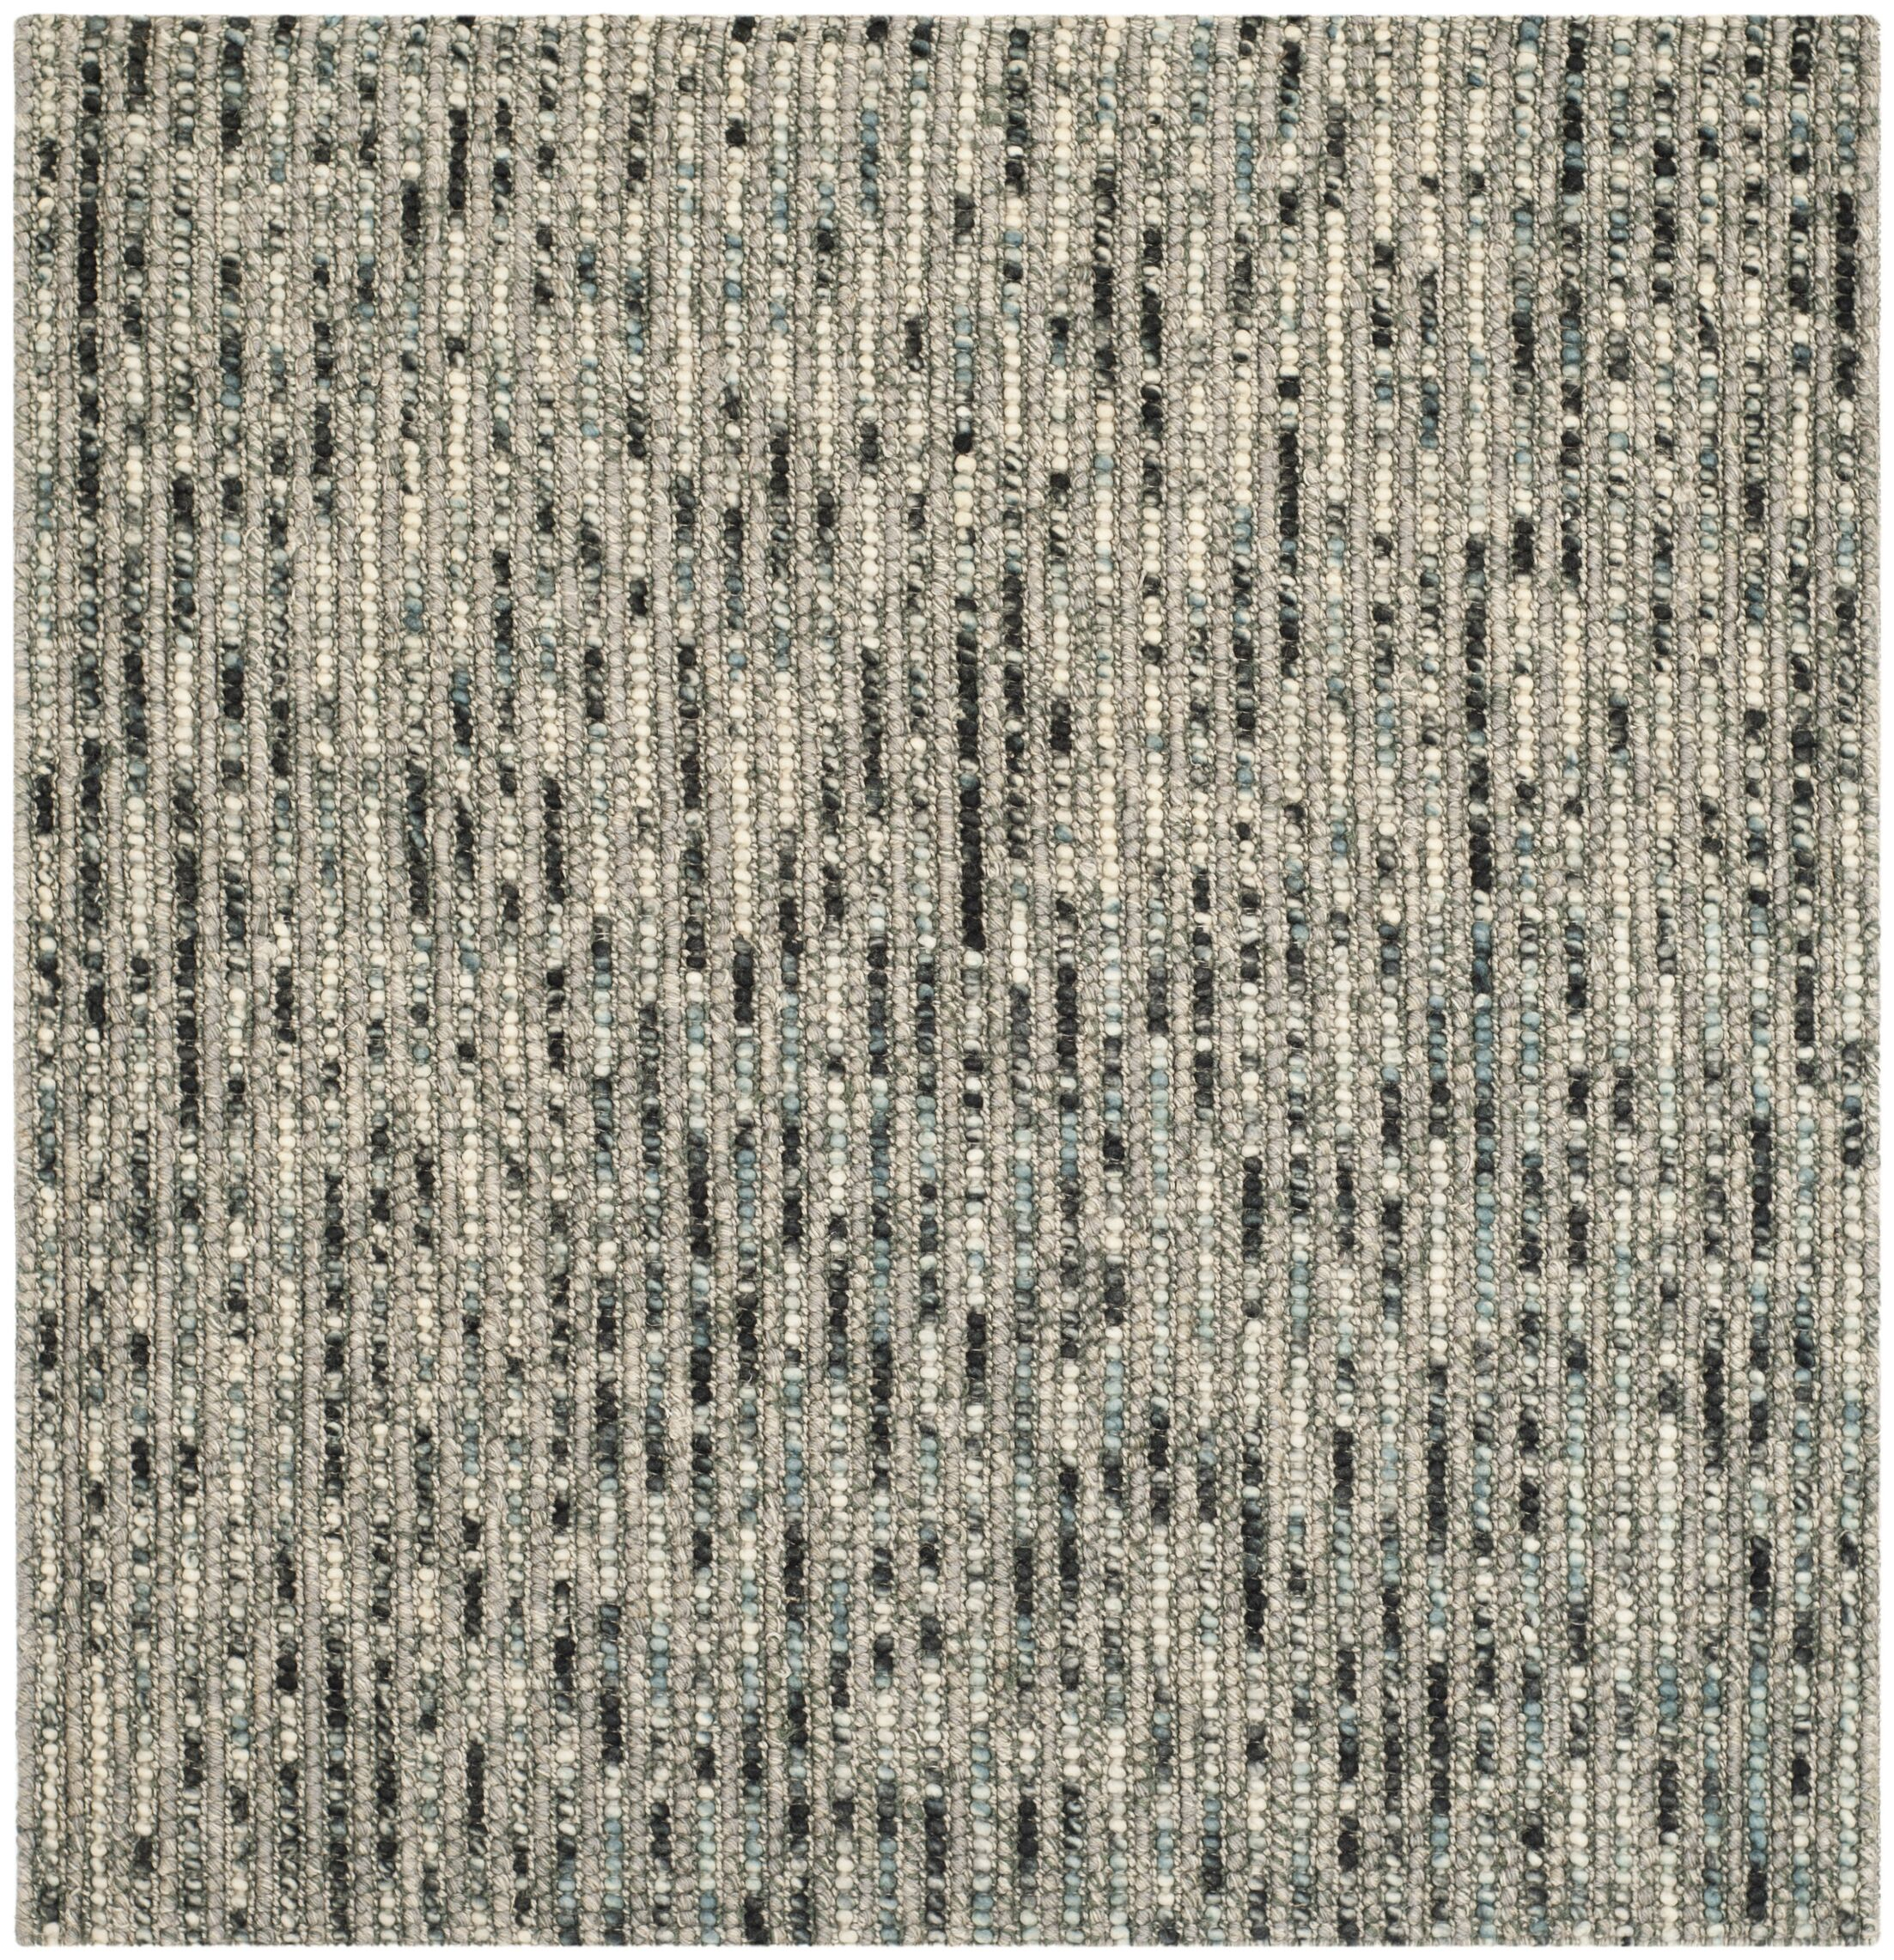 Silvia Hand-Wovn Natural Area Rug Rug Size: Square 10'